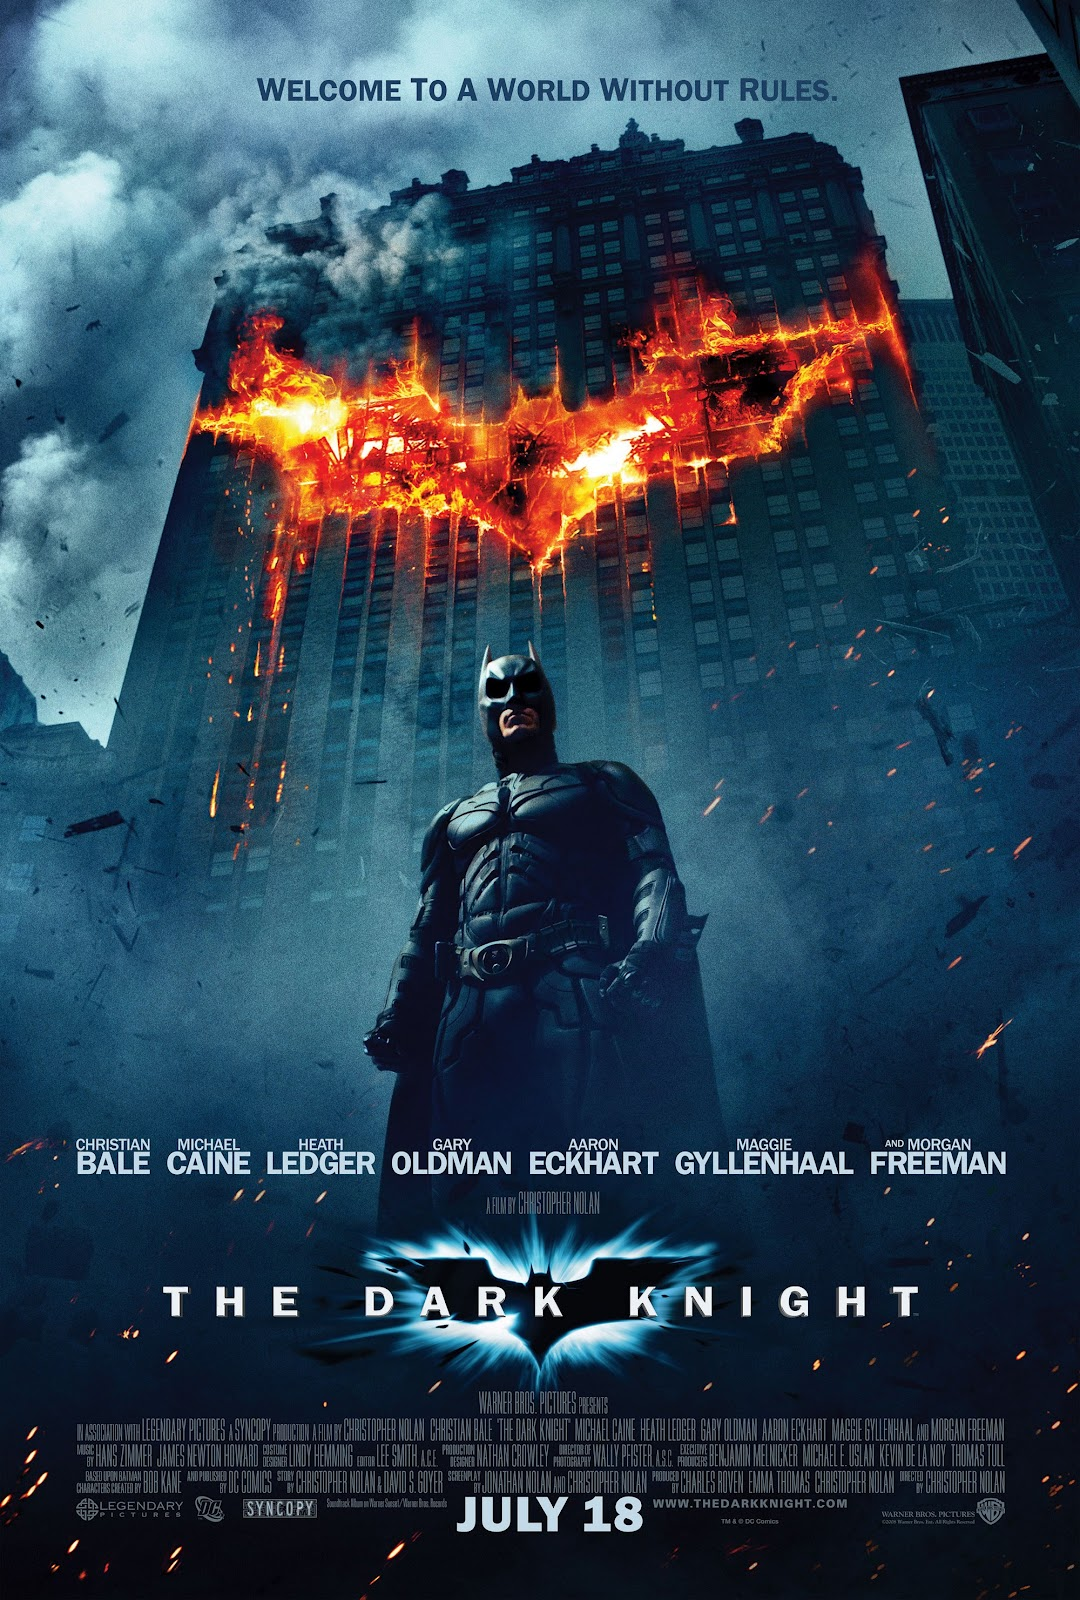 http://3.bp.blogspot.com/-3TWtTowFT2I/T_yvZ56UrwI/AAAAAAAACA8/eNvdBLHDcRI/s1600/the_dark_knight_movie_poster.jpg